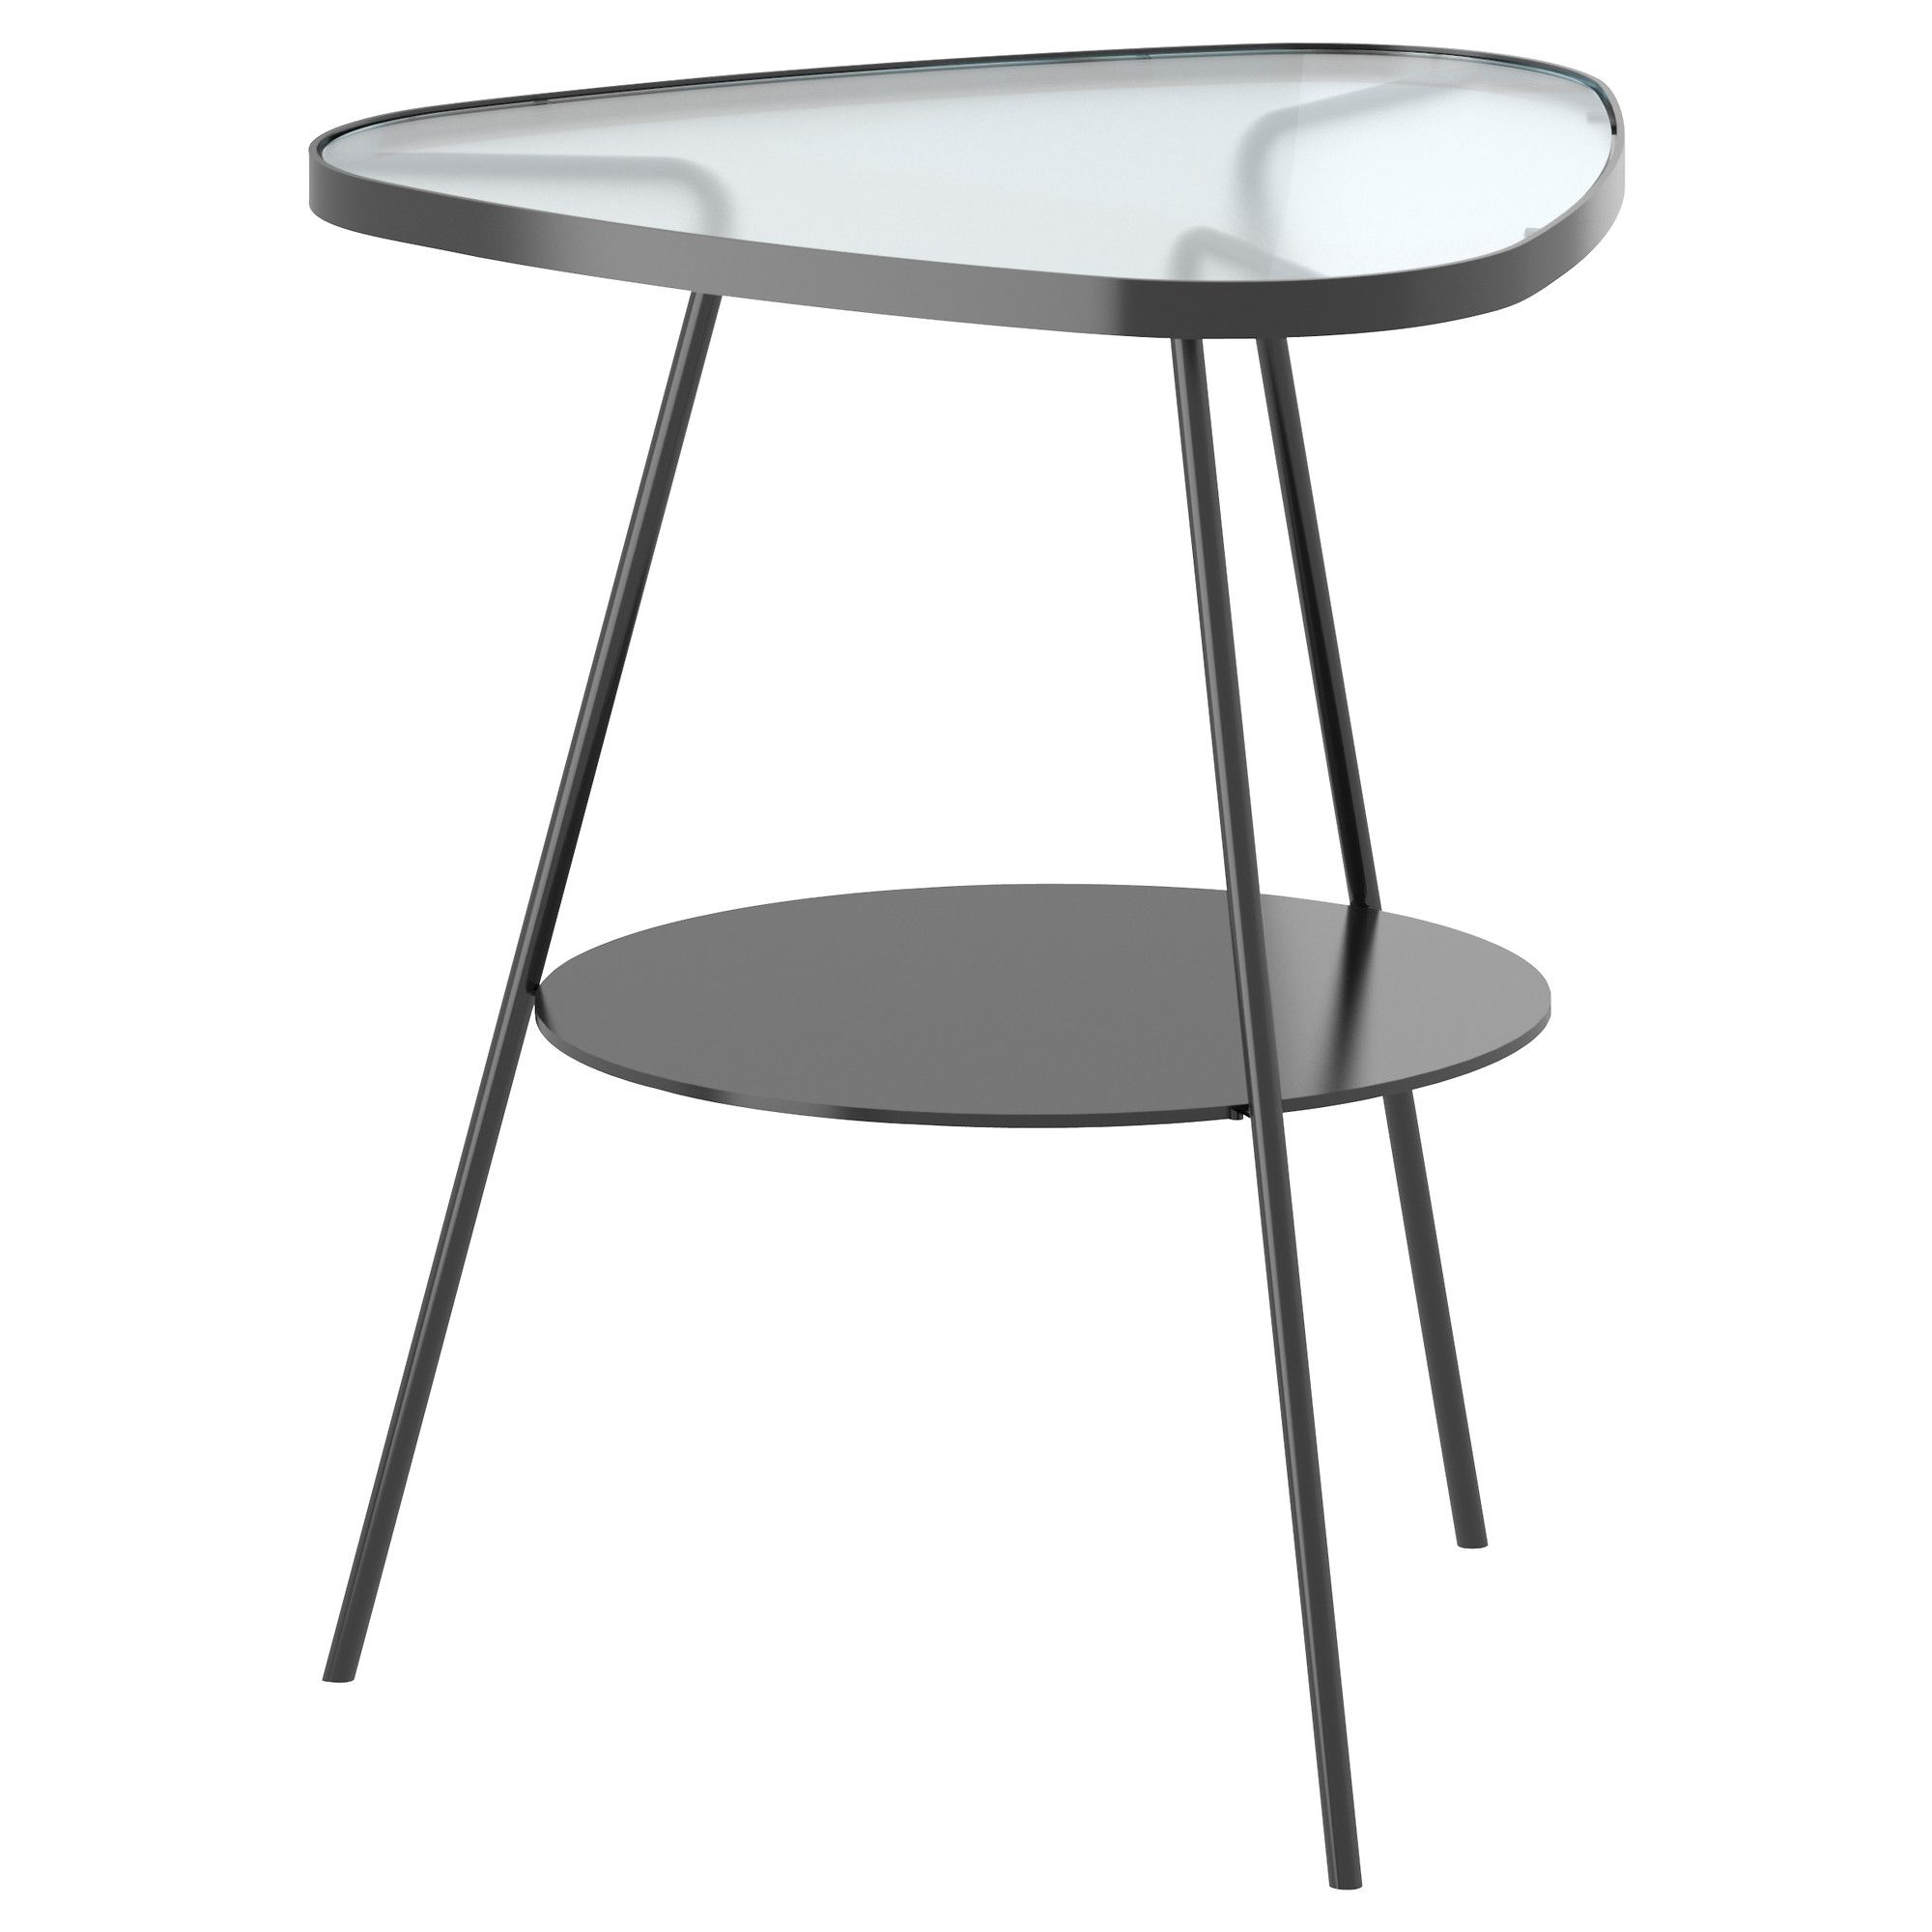 Ikea Us Furniture And Home Furnishings Round Metal Side Table Ikea Nightstand Glass Side Tables